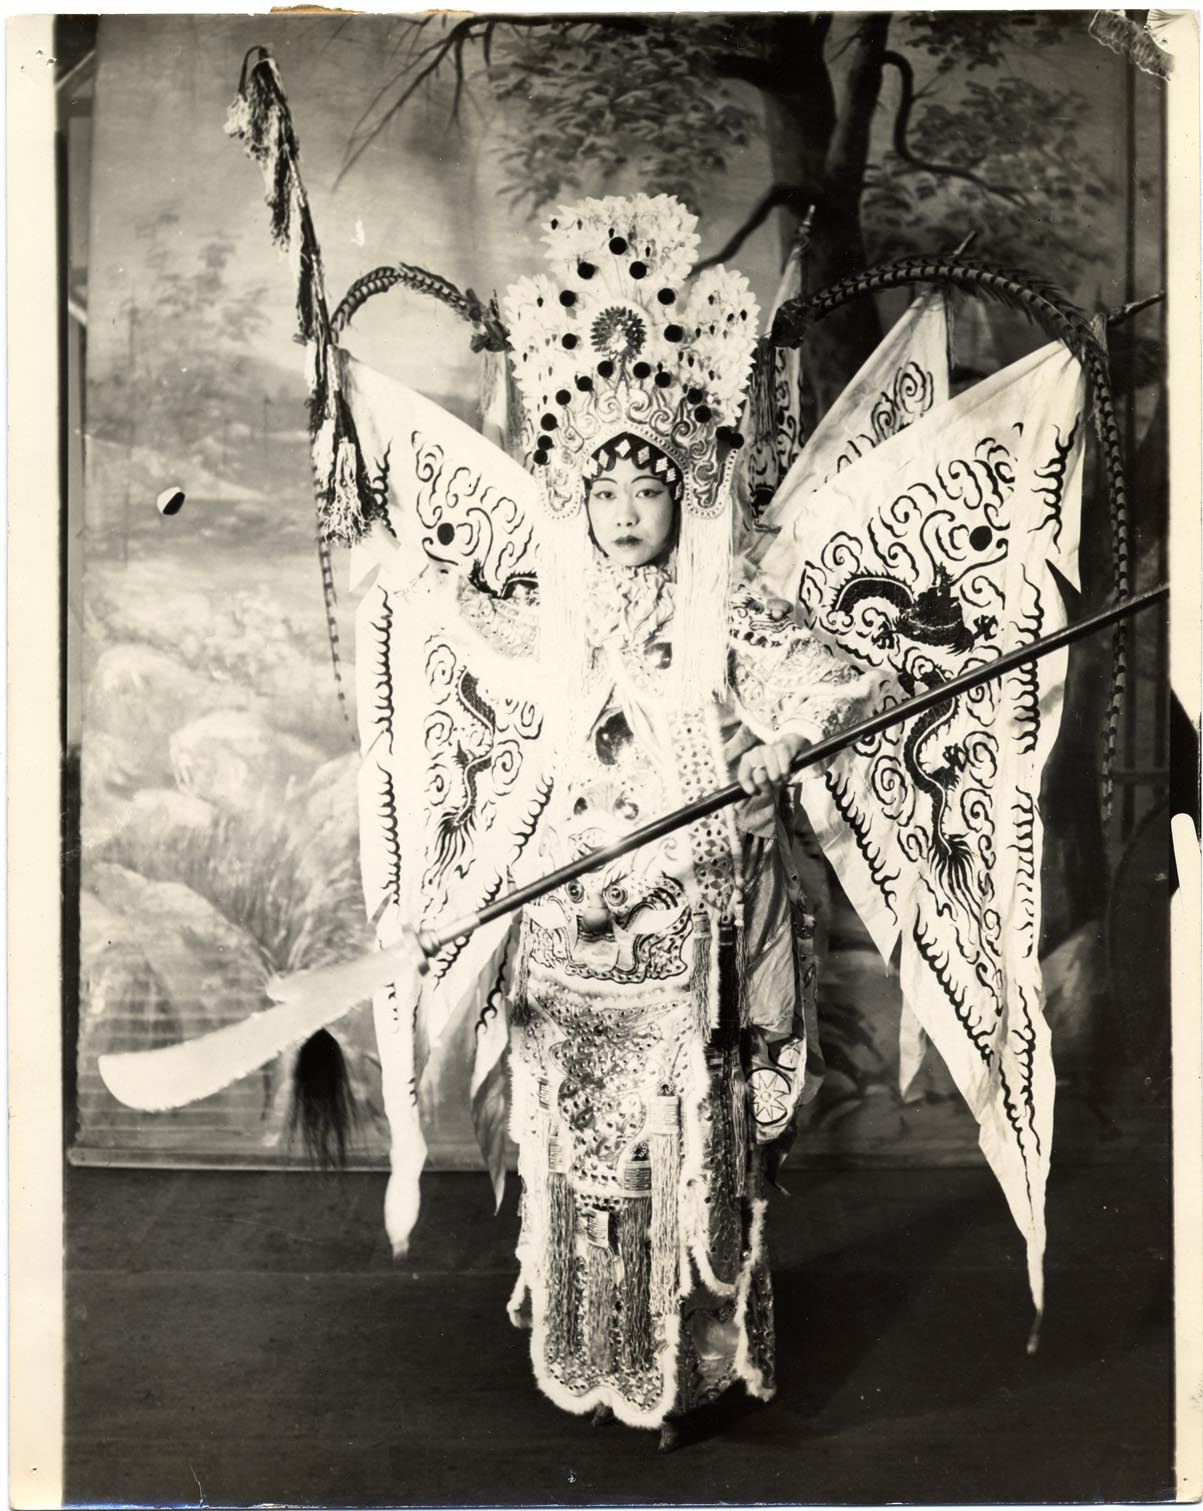 Courtesy of San Francisco Performing Arts Library and Museum